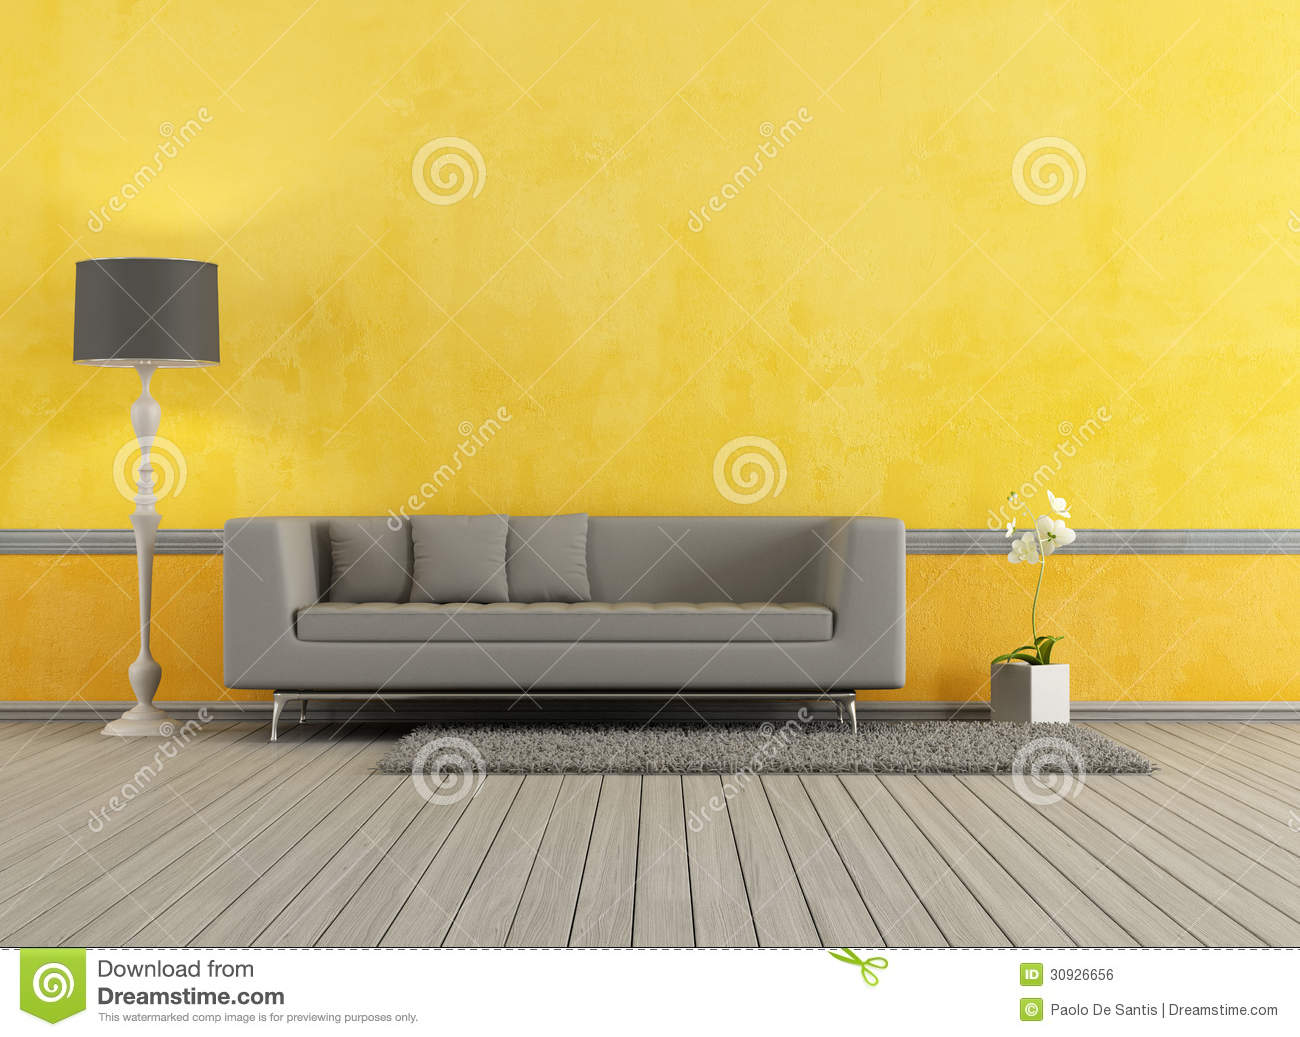 salon gris et jaune illustration stock illustration du. Black Bedroom Furniture Sets. Home Design Ideas